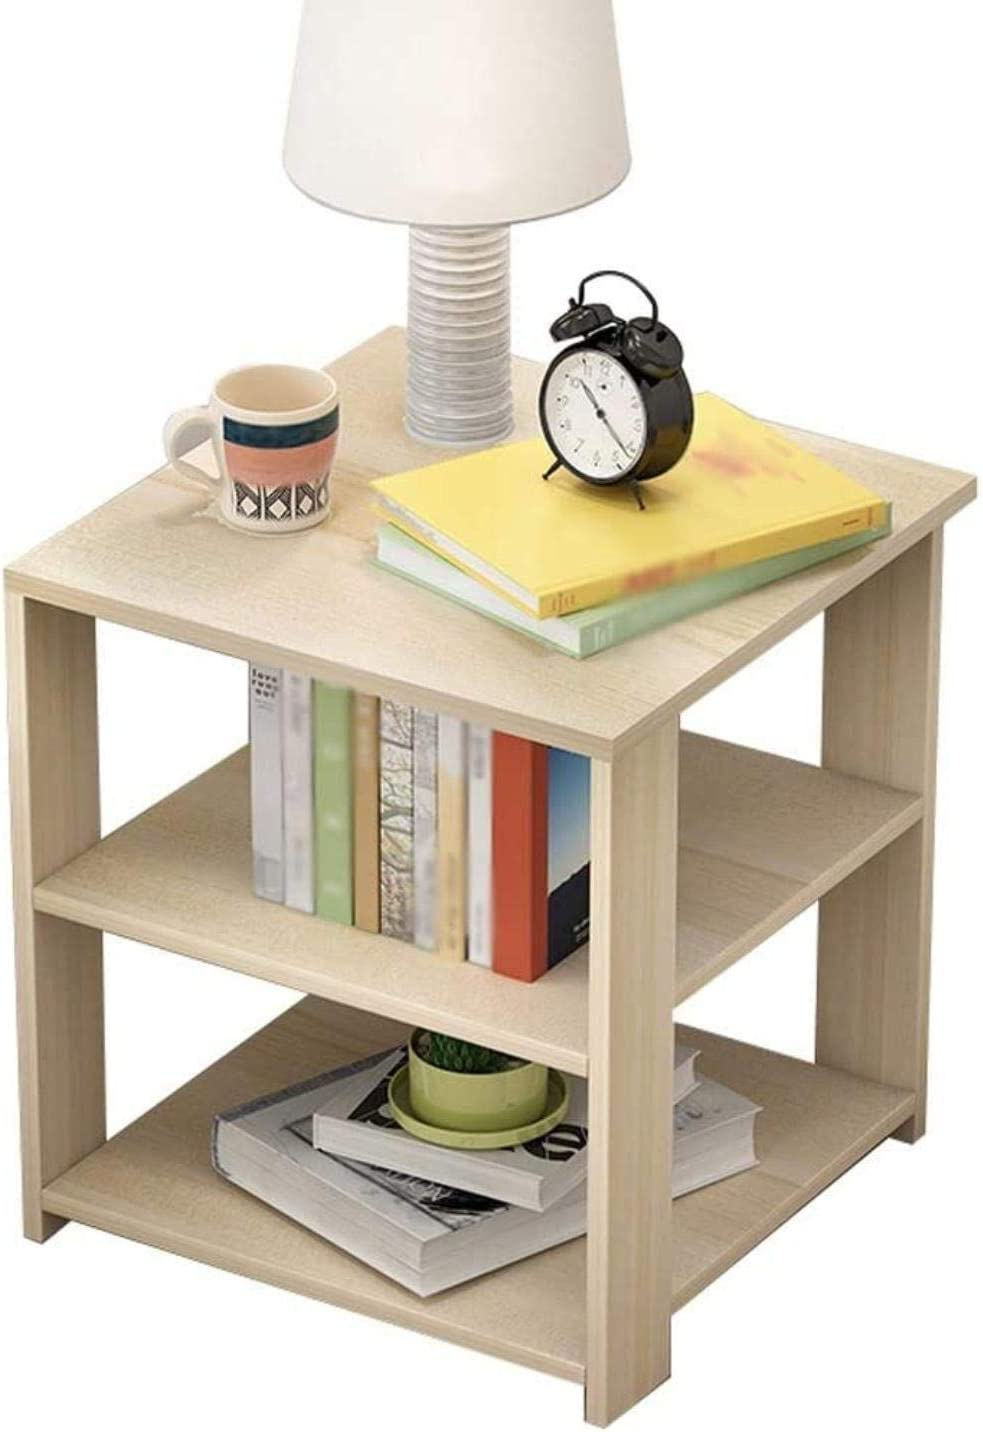 Bedside Cabinet Outlet ☆ Free Shipping Table Durable Partiti Household Corridor Max 76% OFF